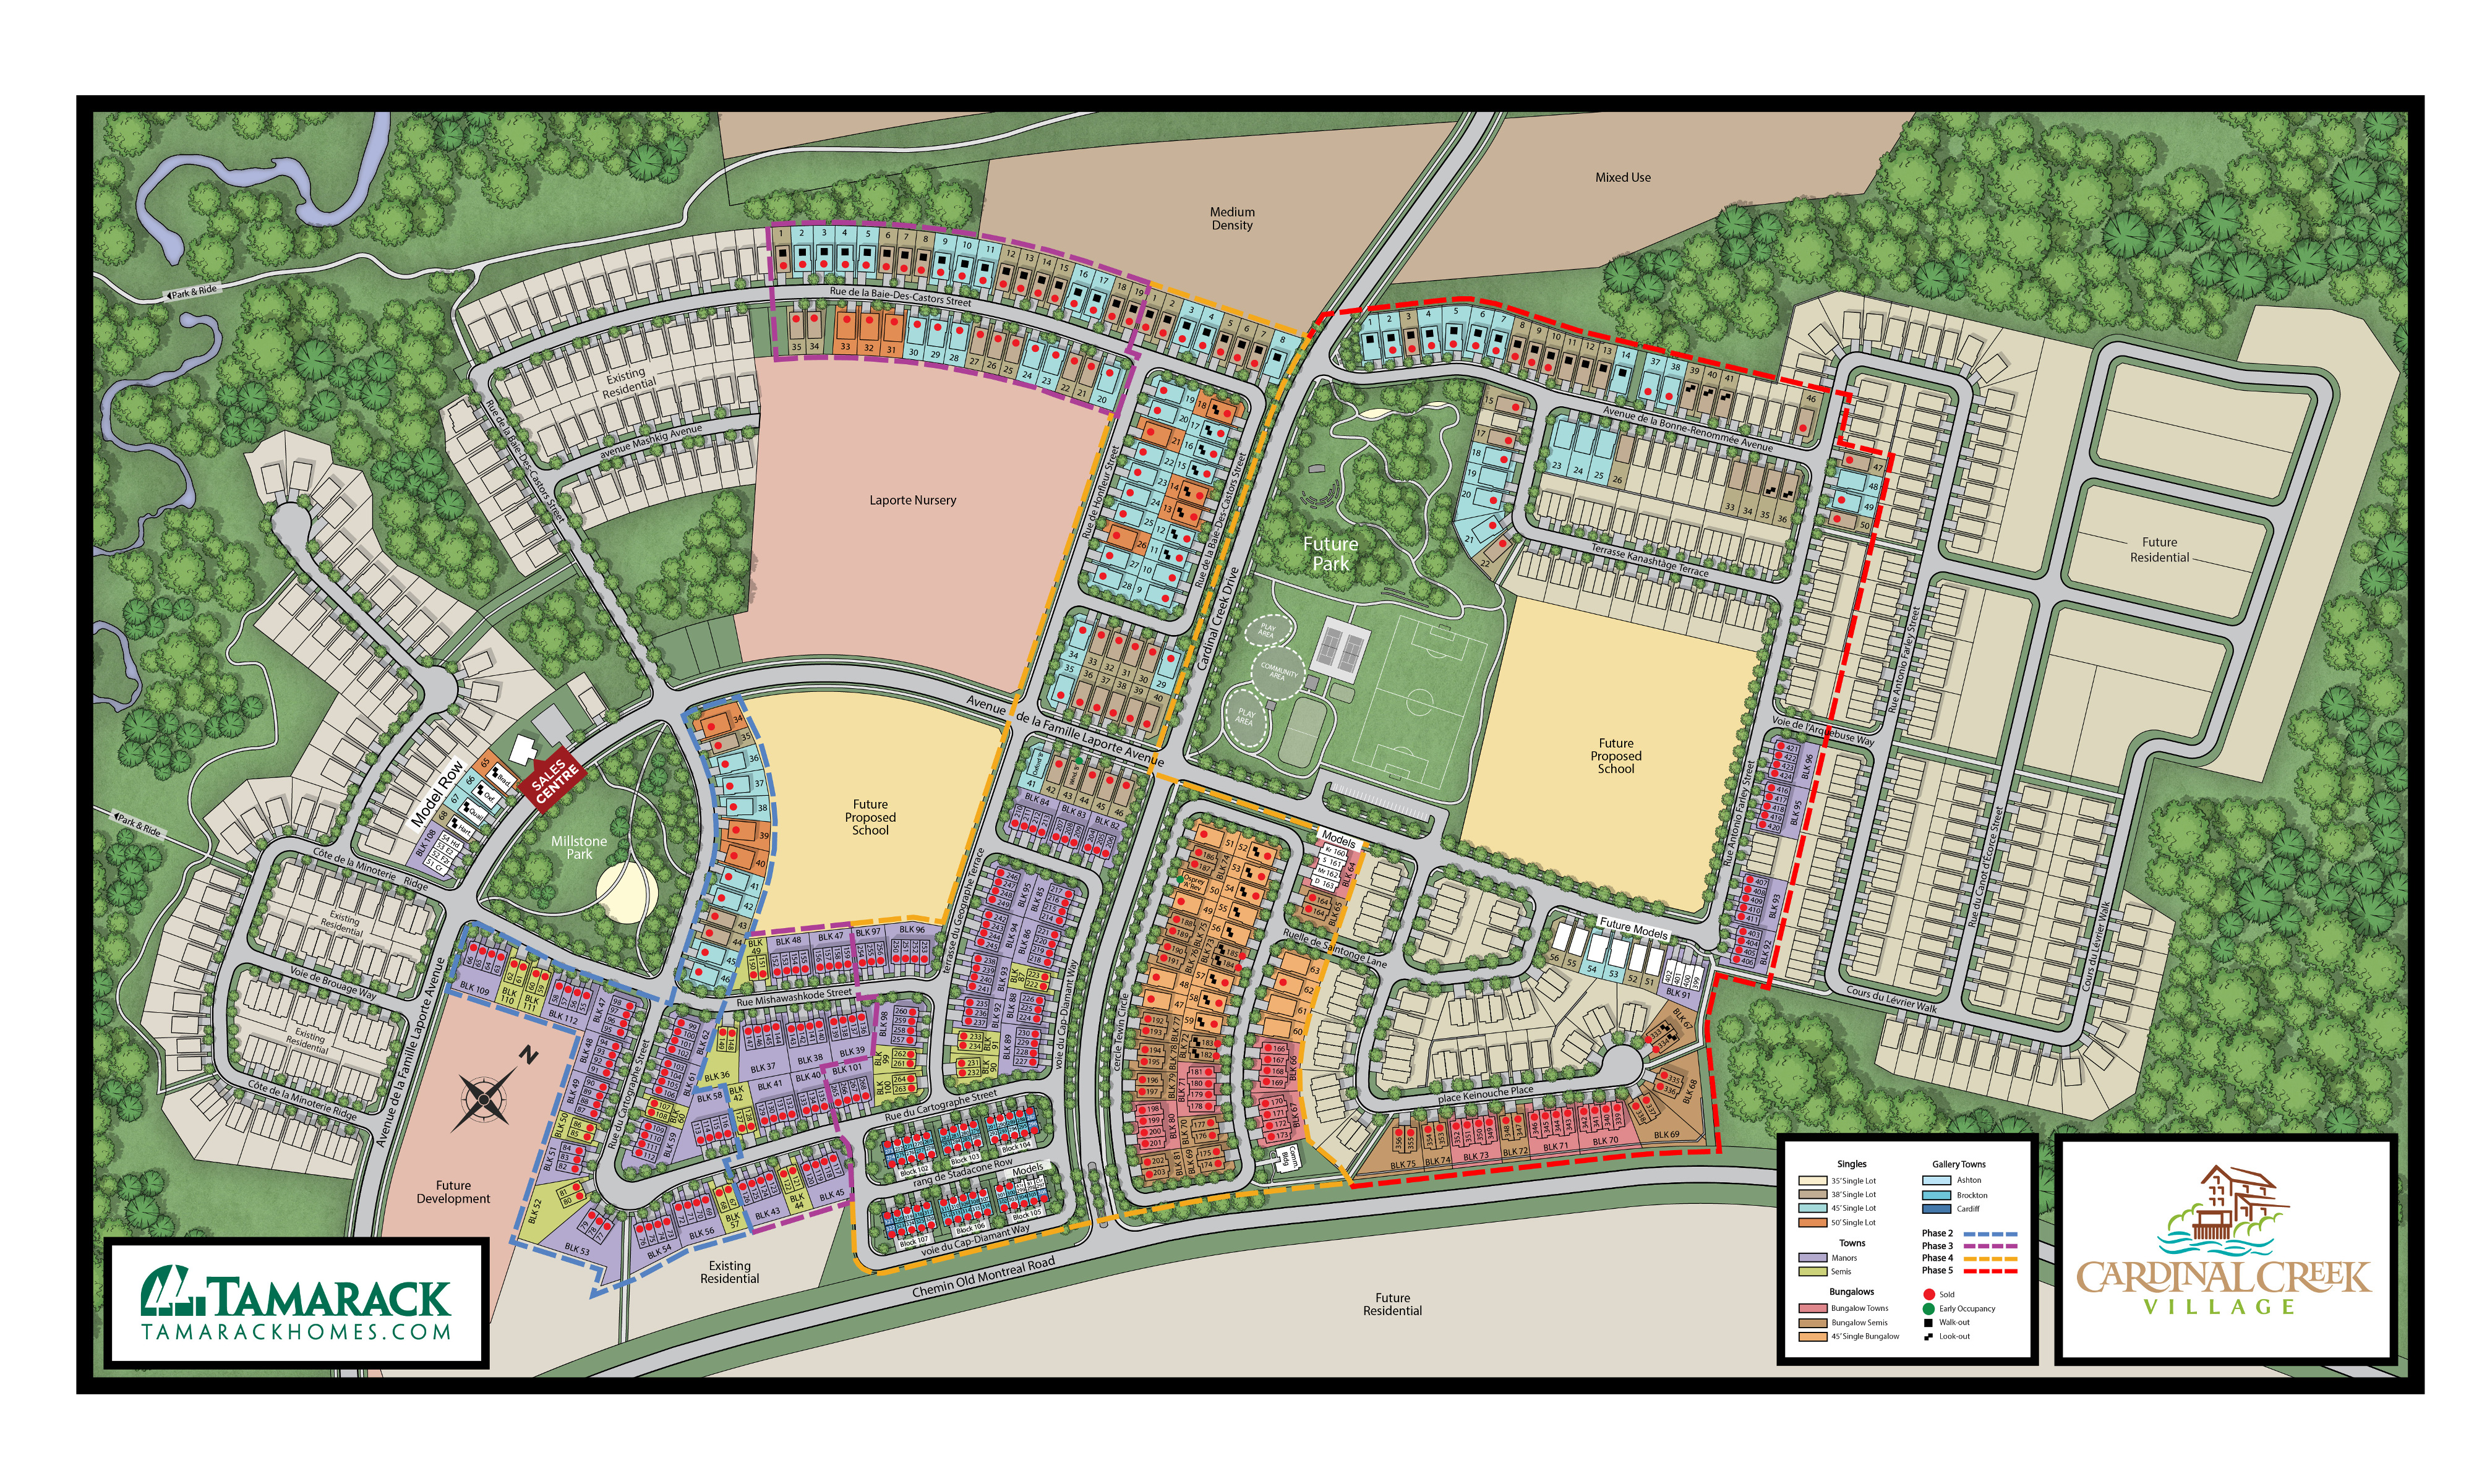 Cardinal Creek Village Sitemap